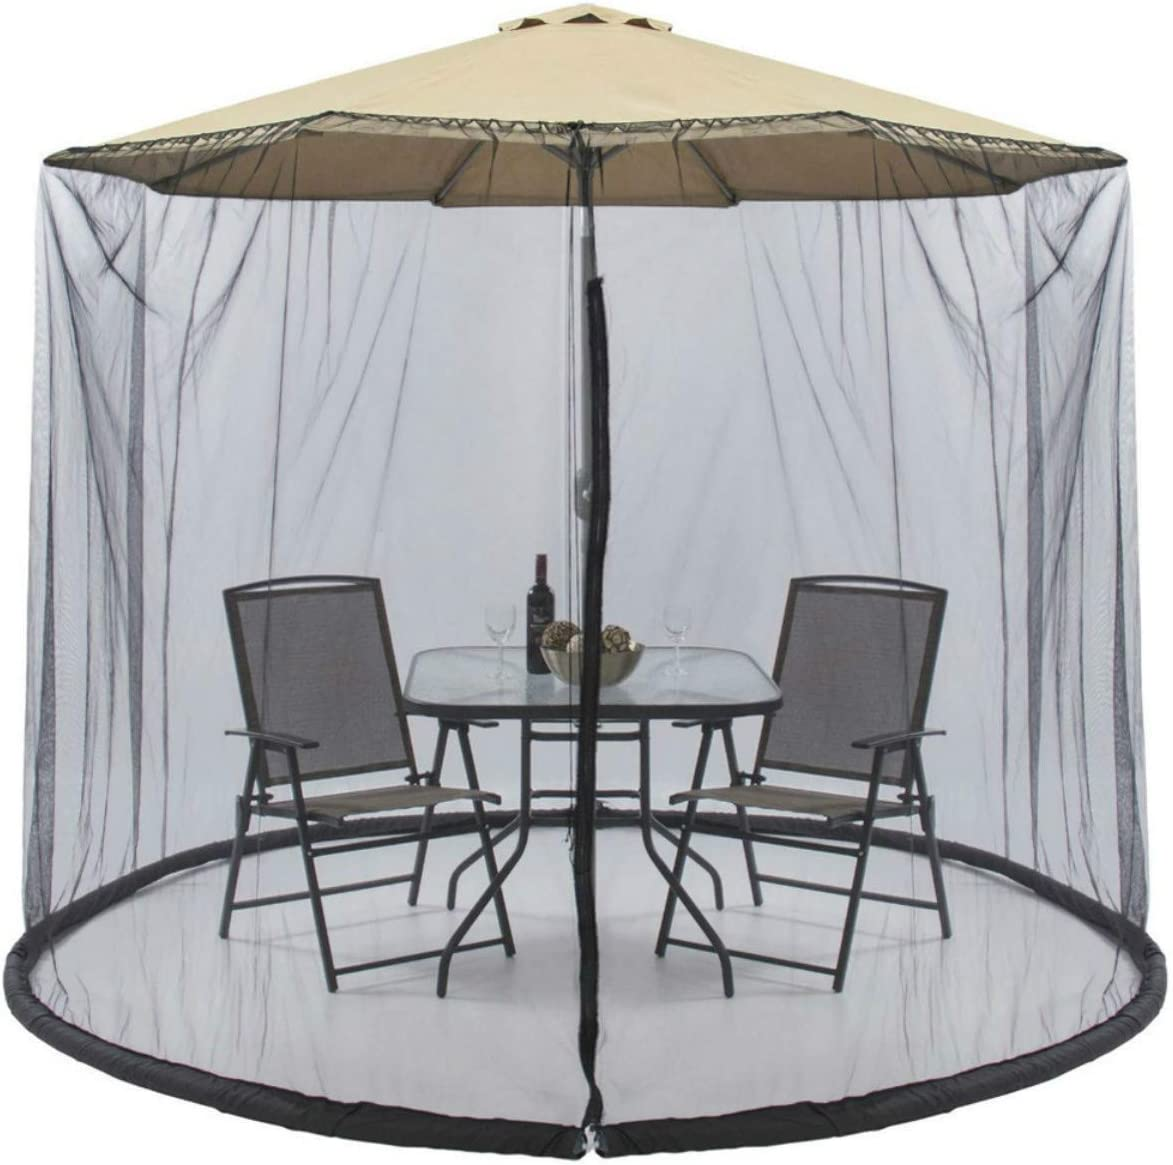 H ZT Mosquito Net for Patio Umbrella with Zipper Mesh Screen for Patio Table Fits 9-10FT Patio Umbrella Outdoor Garden Courtyard Black